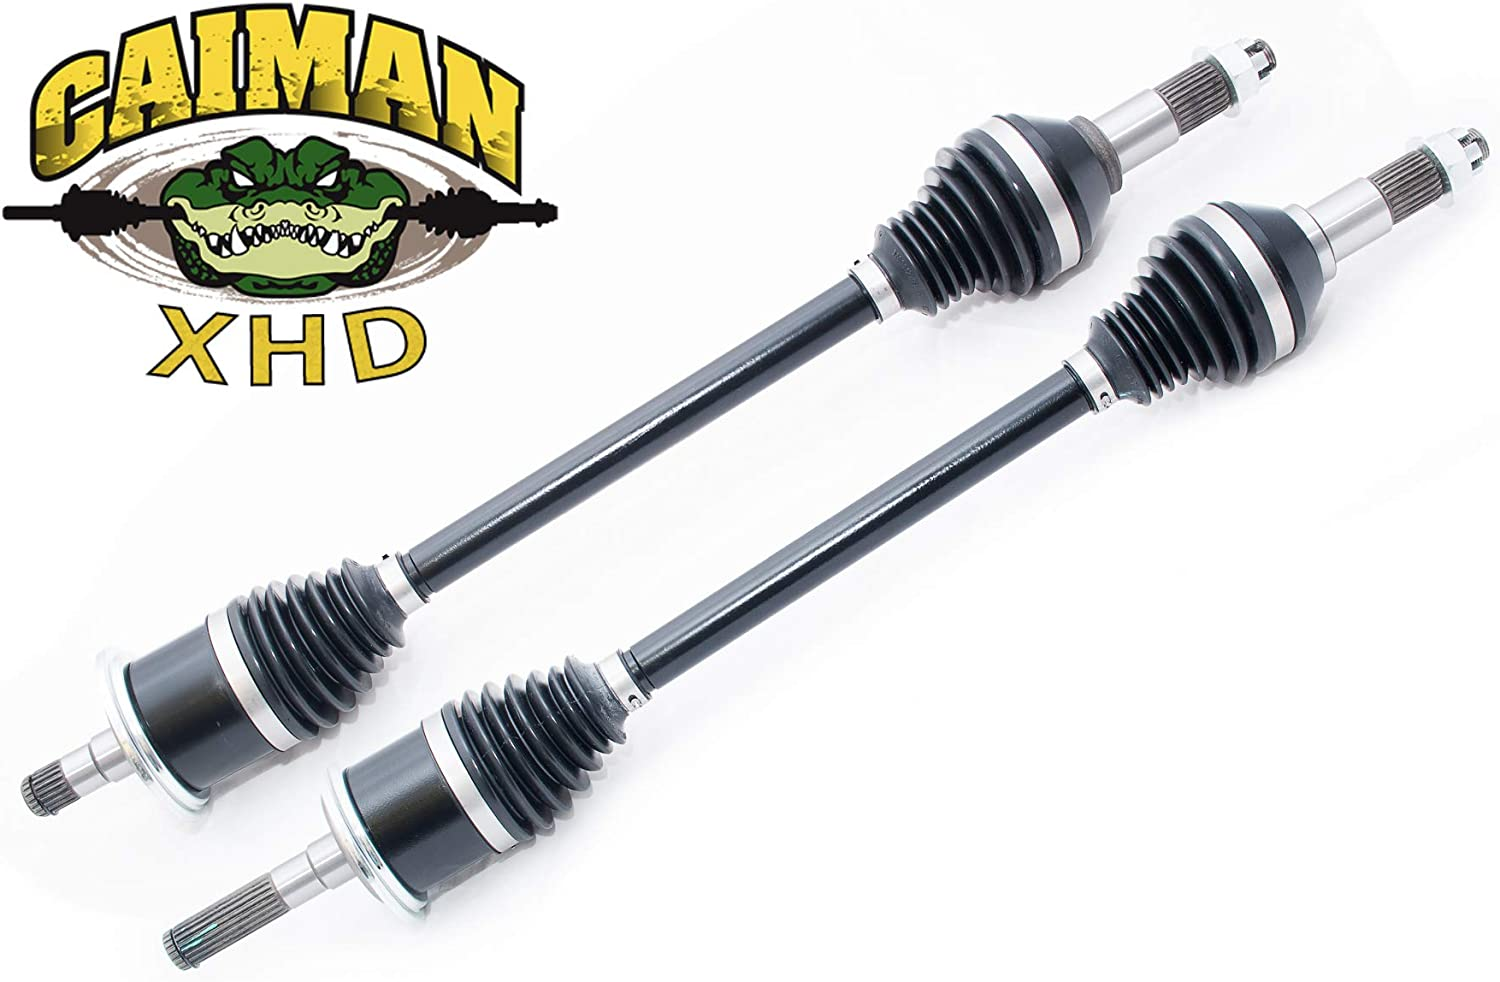 FRONT AXLE INNER CV BOOT KIT Fits CAN-AM COMMANDER 1000 4X4 EFI 2013-2015